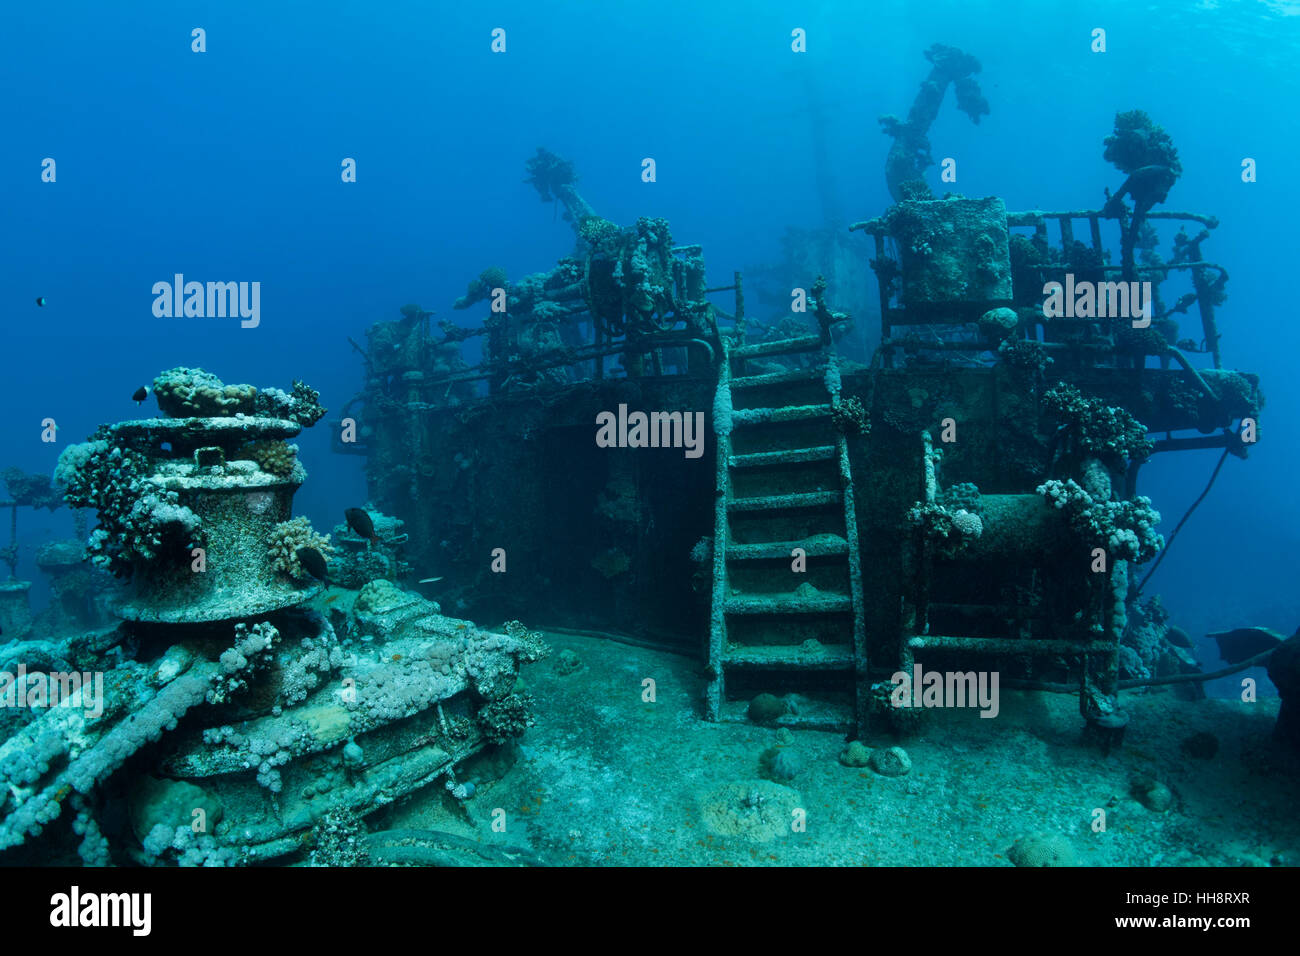 Deck of shipwreck, Russian wreck MS Khanka, former spy ship or communications ship, Zabargad Island, Red Sea, Egypt - Stock Image